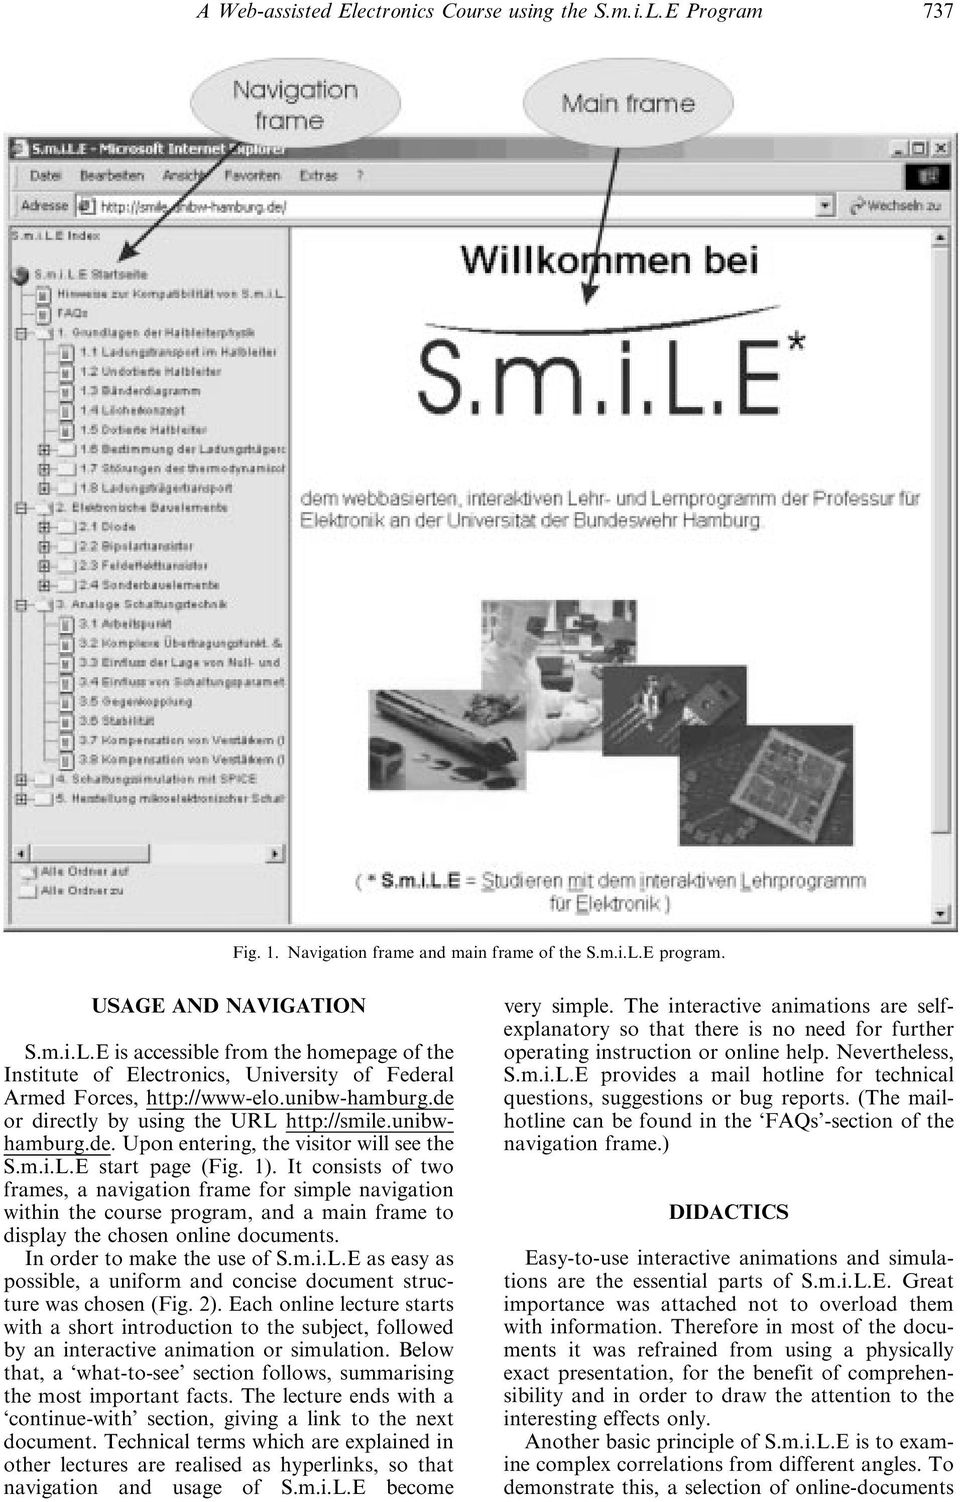 It consists of two frames, a navigation frame for simple navigation within the course program, and a main frame to display the chosen online documents. In order to make the use of S.m.i.L.